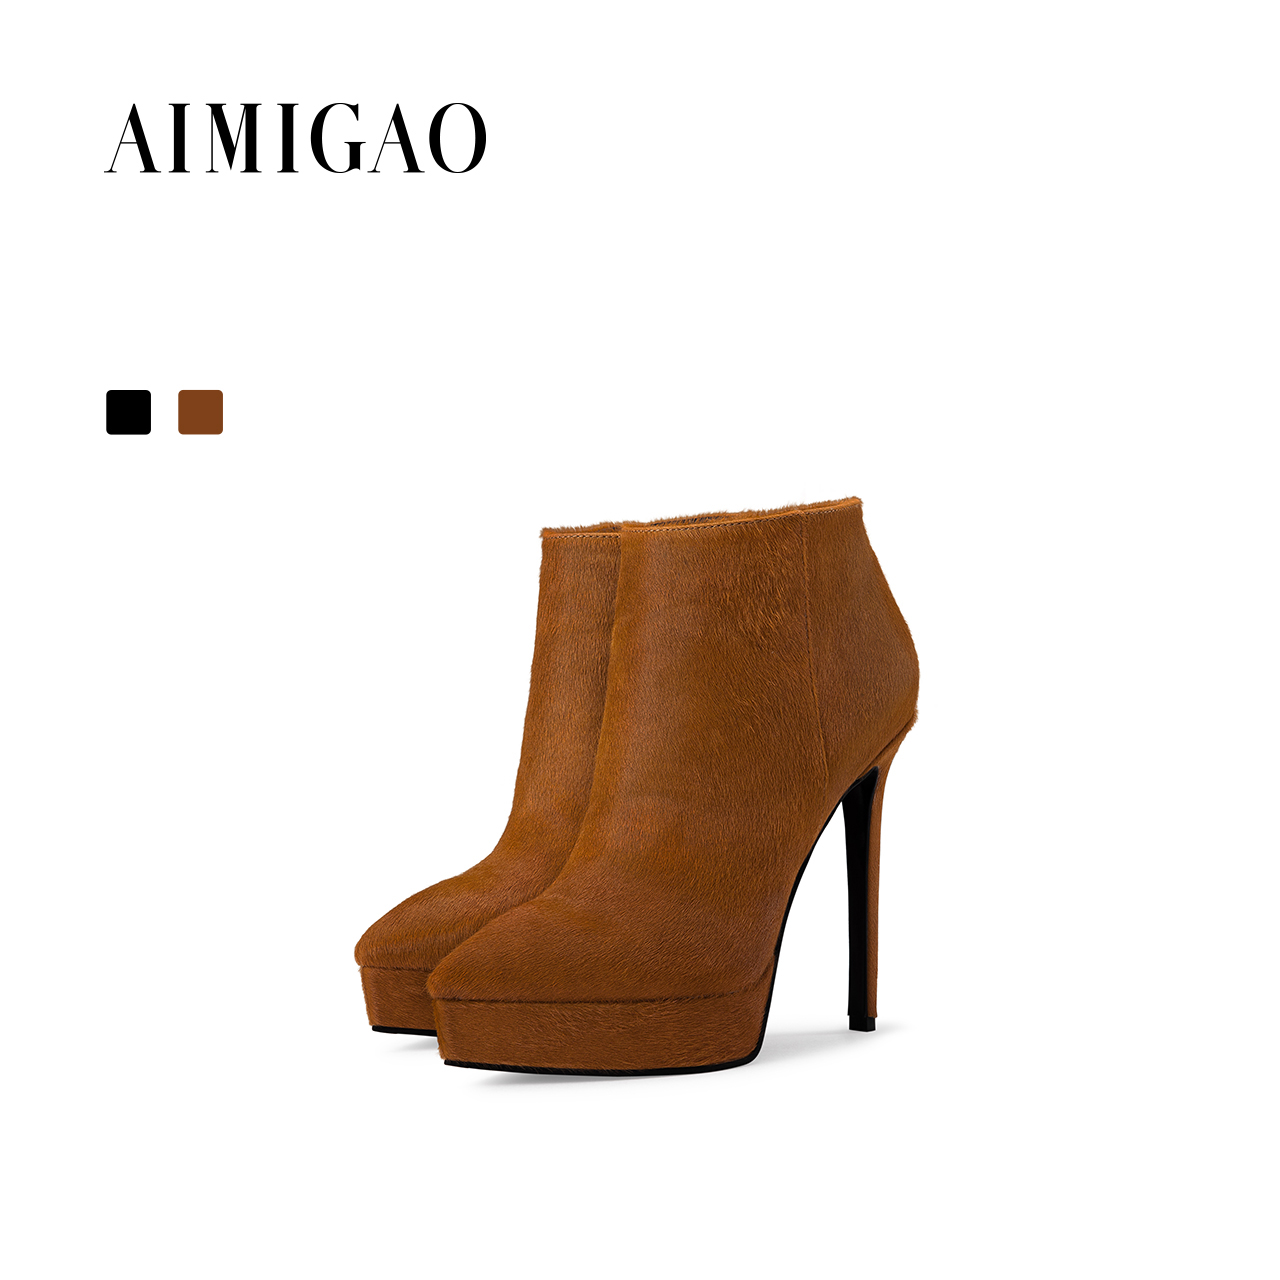 AIMIGAO Sexy high heel platform ankle boots women side zipper fashion women boots pointed toe boots shoes 2017 autumn winter new fashion winter women short boots sexy pointed toe platform high heel shoes big size 32 46 solid pu ladies zipper ankle boots